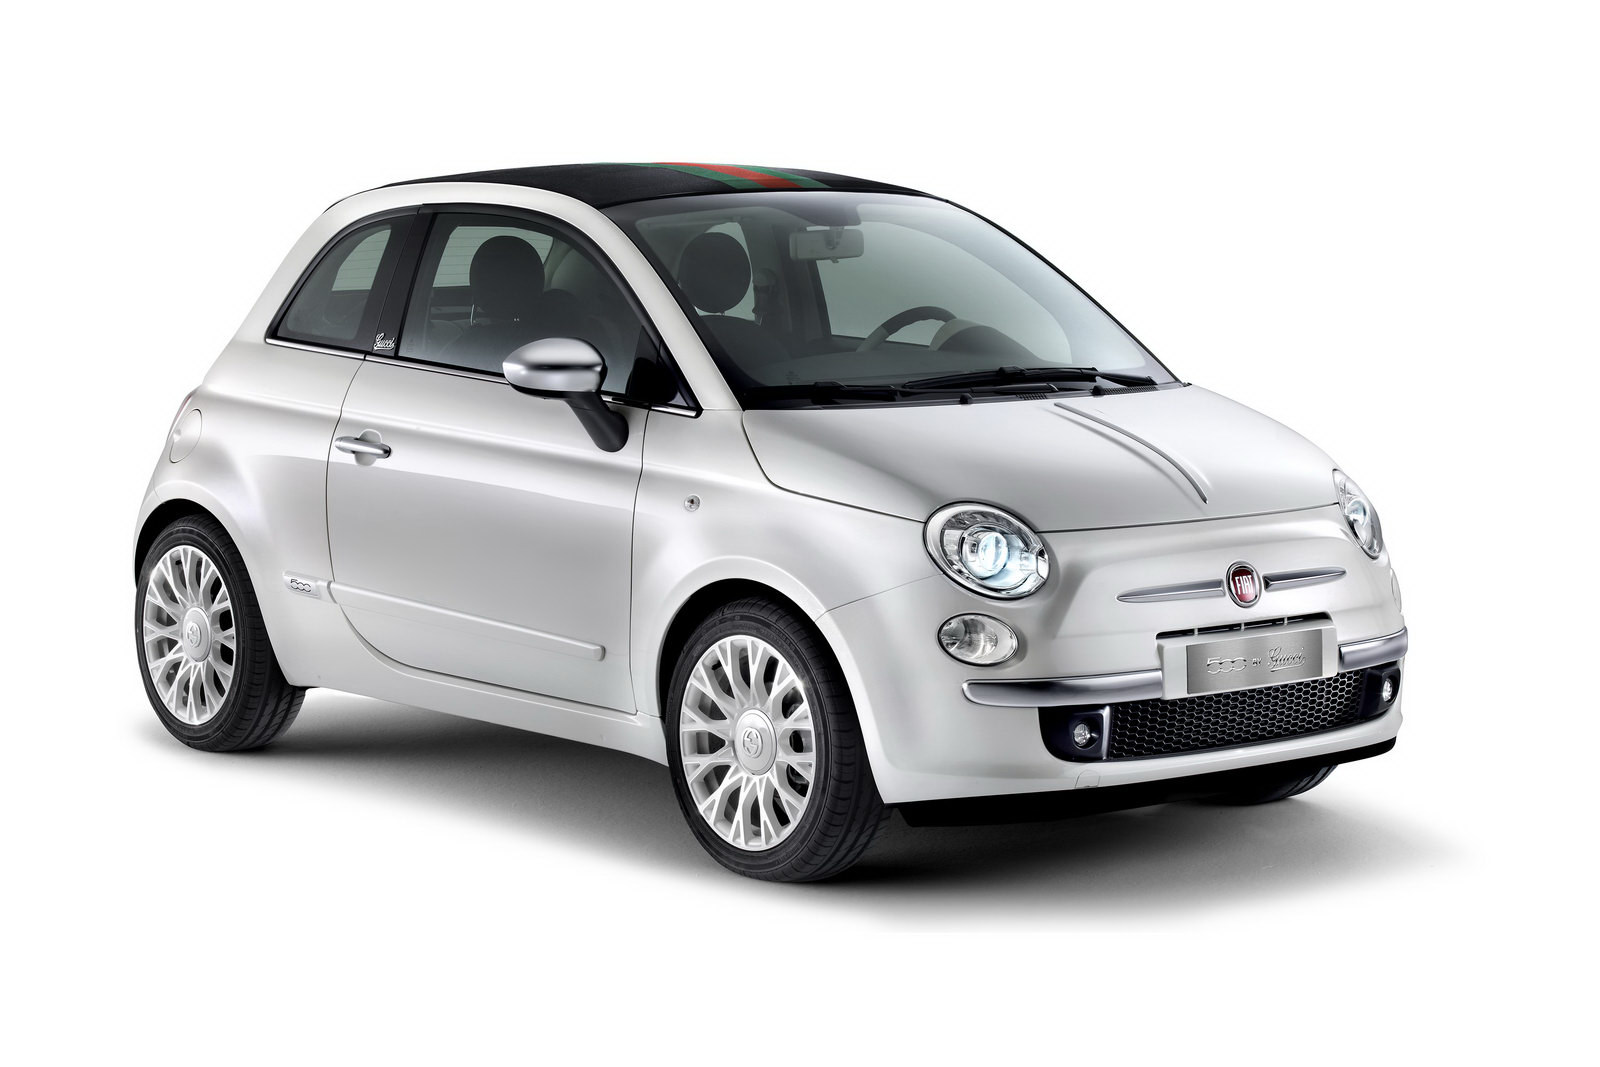 2012 Fiat 500 by Gucci FIAT ANNOUNCES NEW 2012 TOPLESS EDITION FROM GUCCI